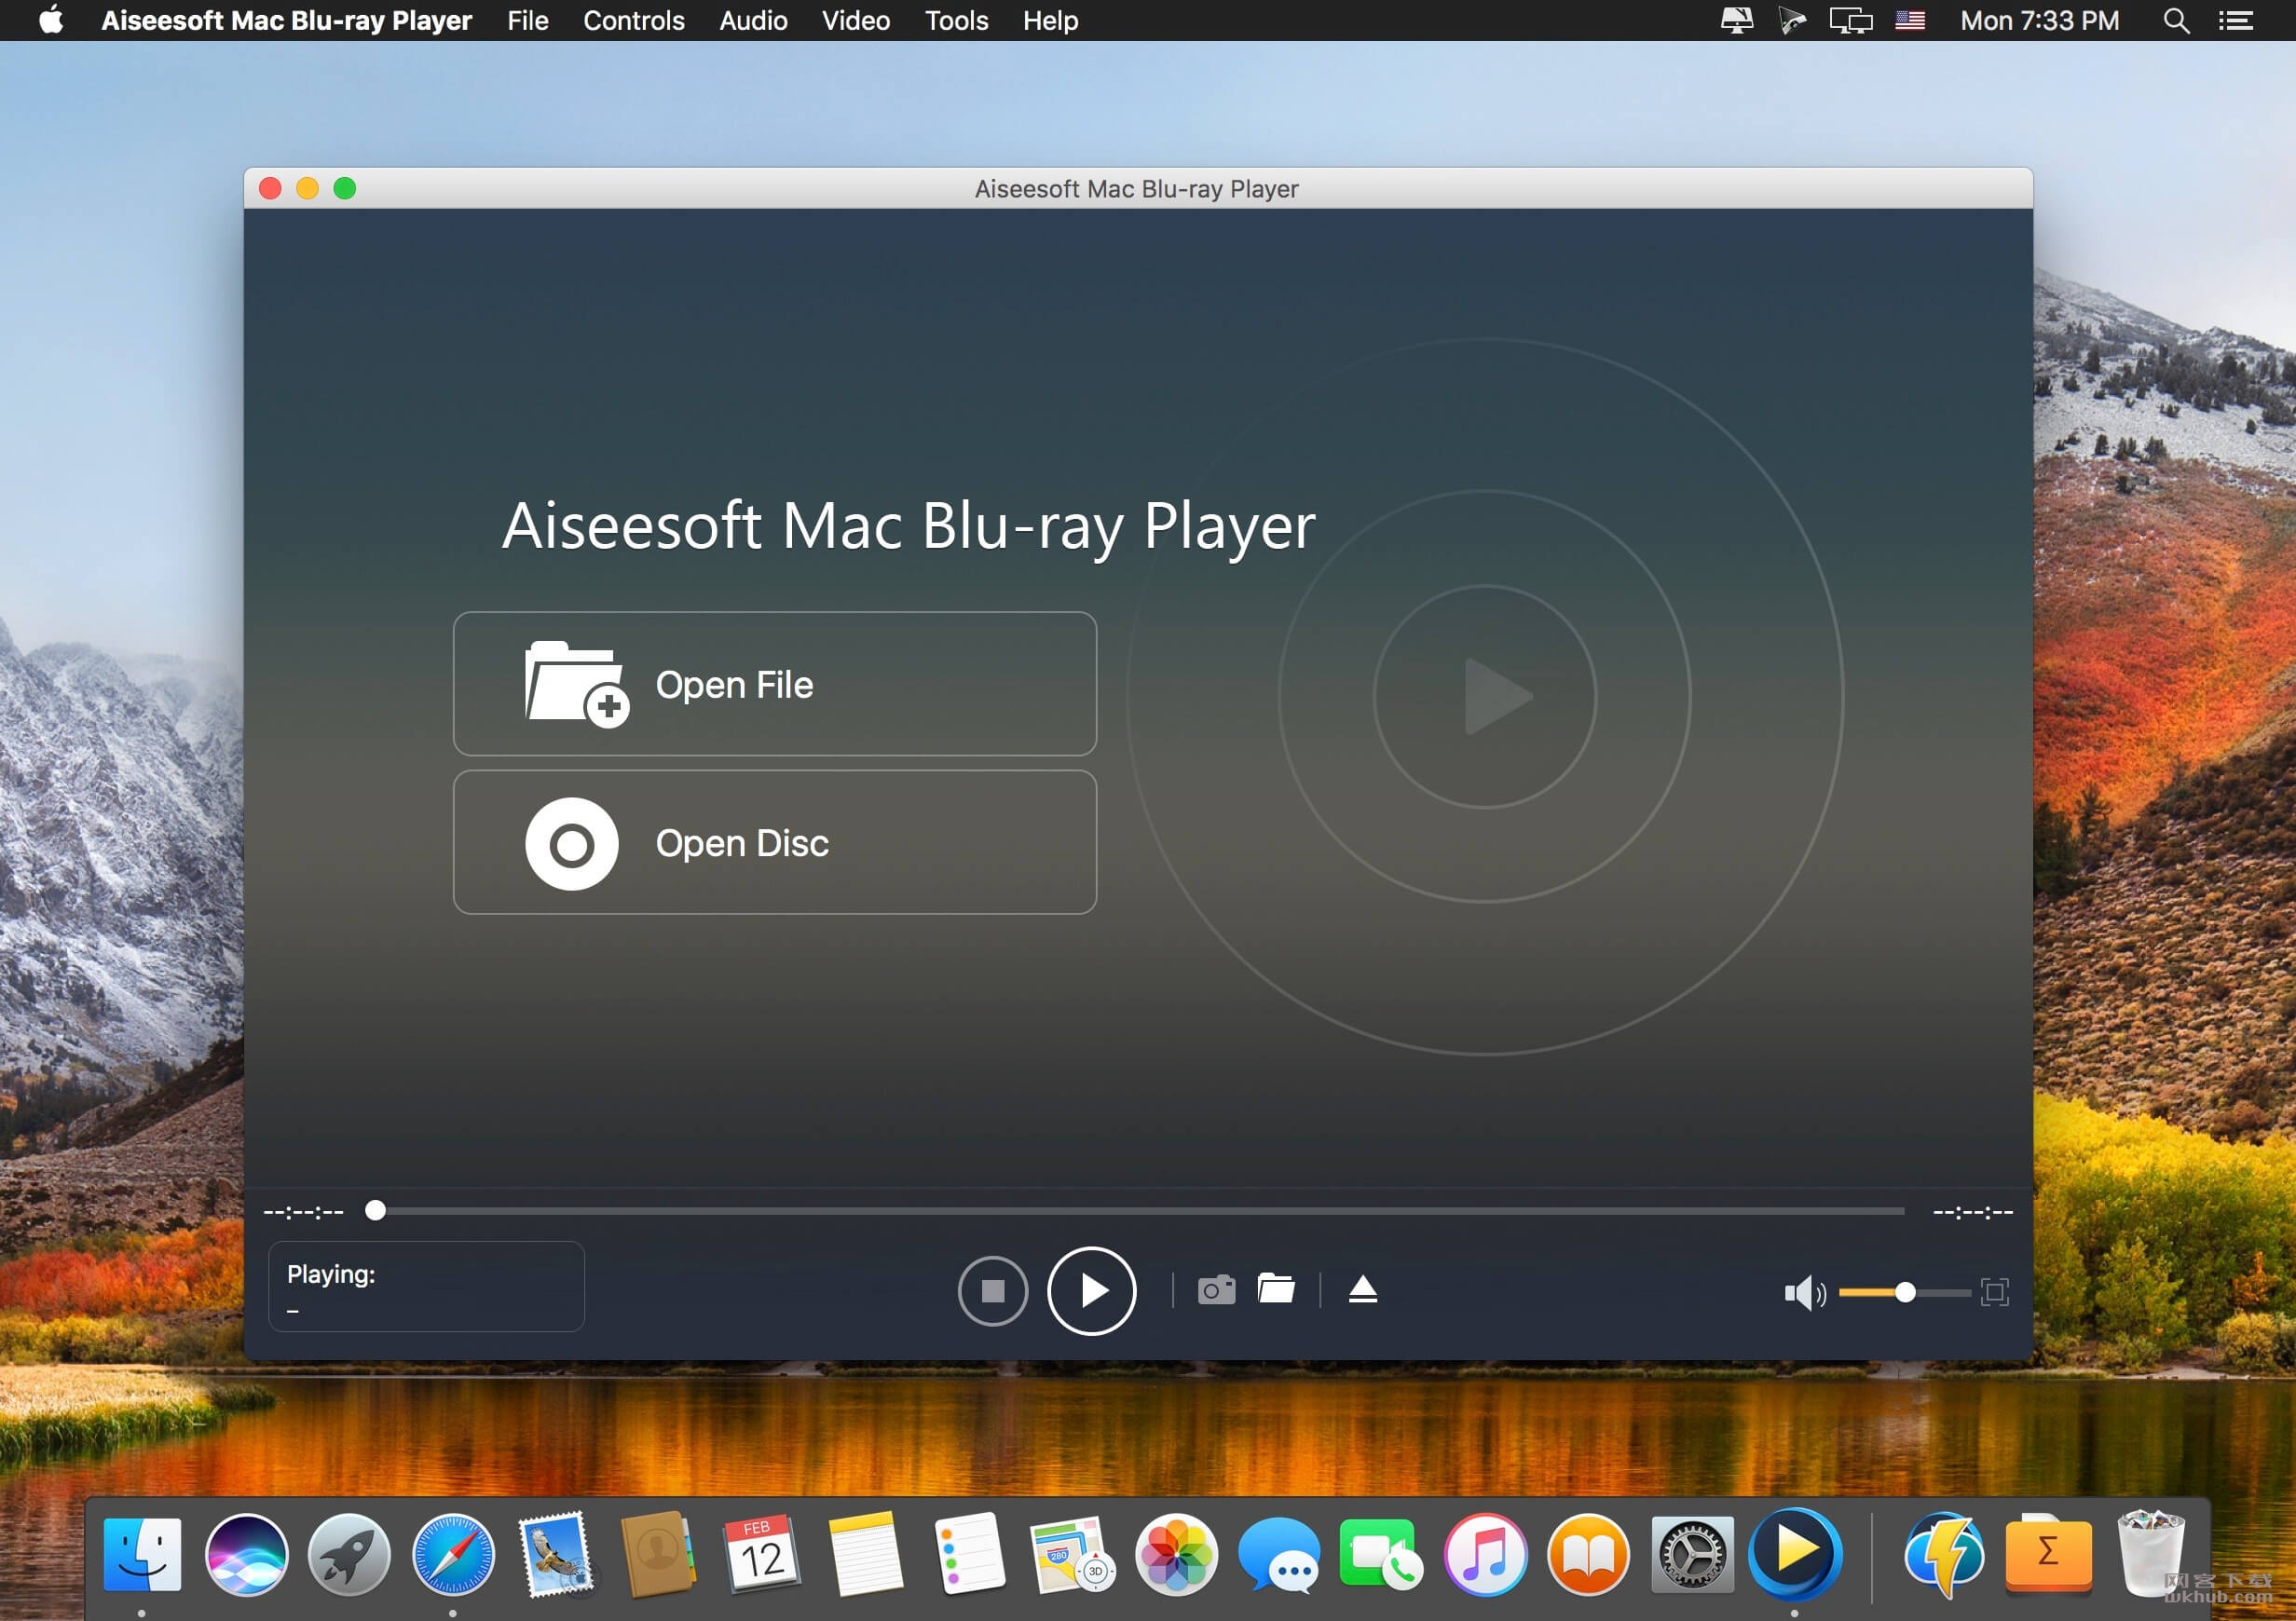 Aiseesoft Mac Blu-ray Player 6.5.12.90040 视频播放工具